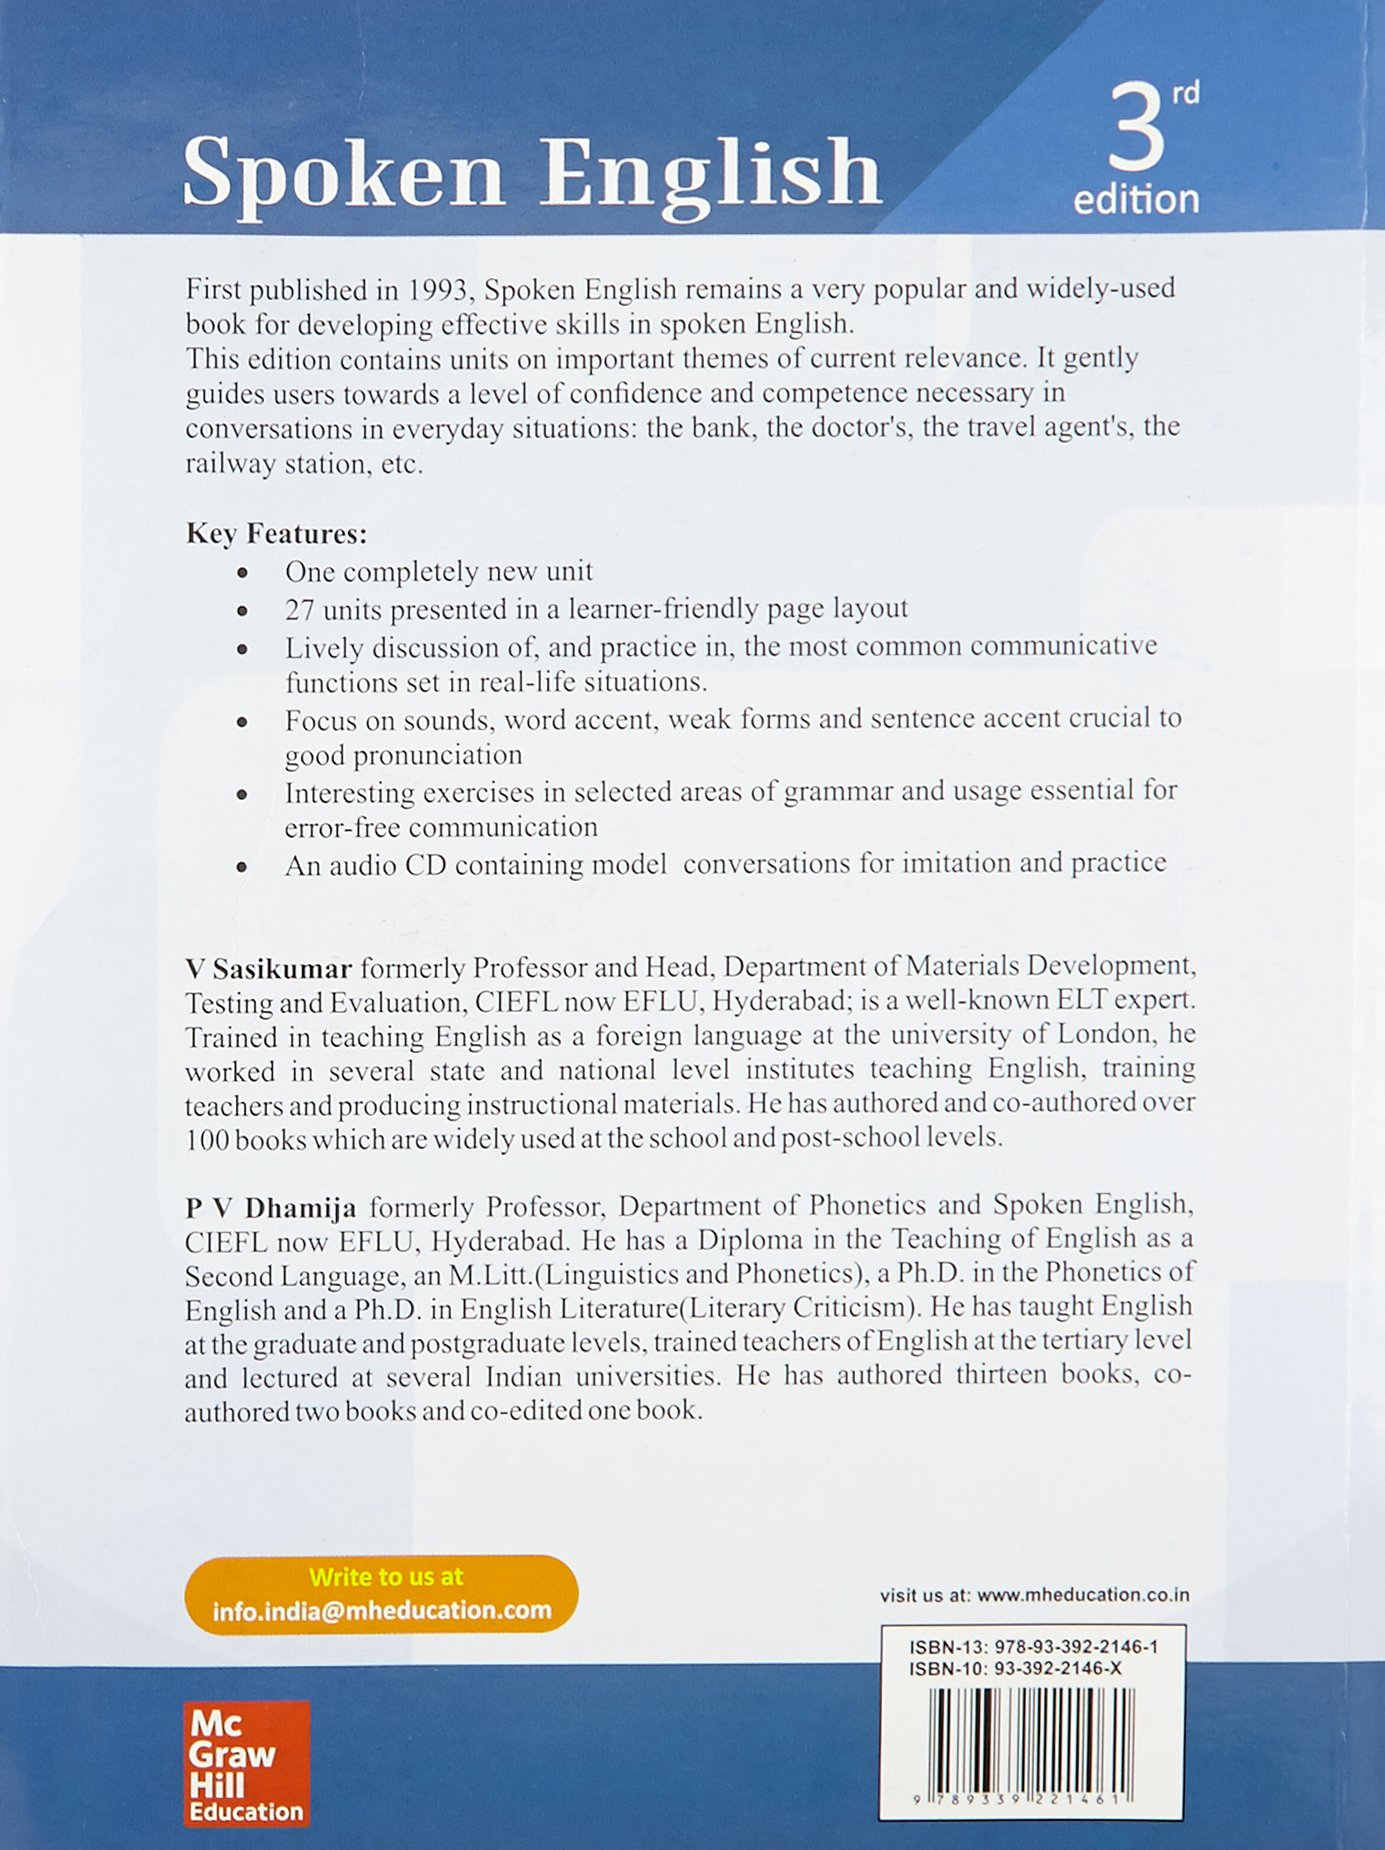 Buy Spoken English Book Online at Low Prices in India   Spoken English  Reviews & Ratings - Amazon.in